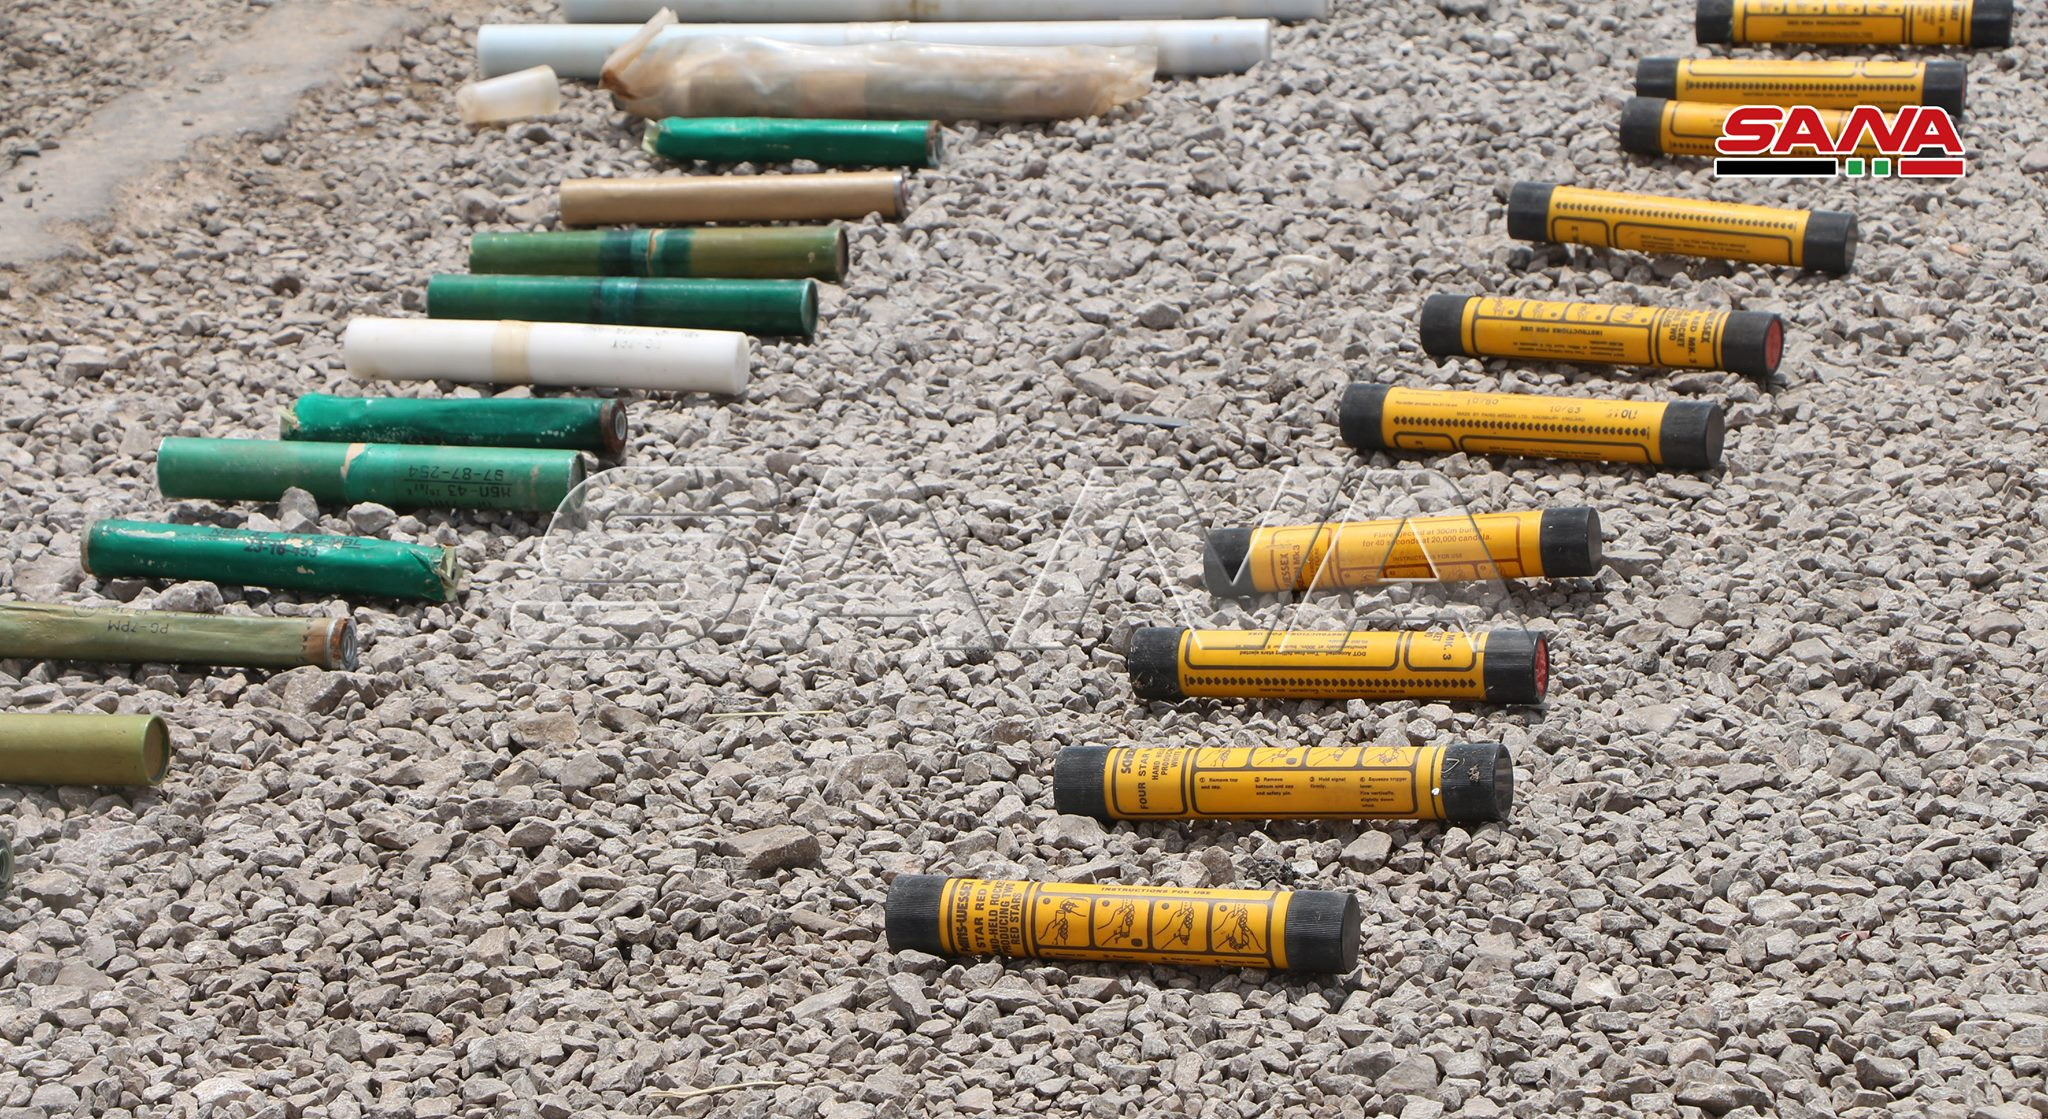 Syrian Army Uncovers Weapons, Including Anti-Aircraft Missiles, In Western Daraa (Photos)